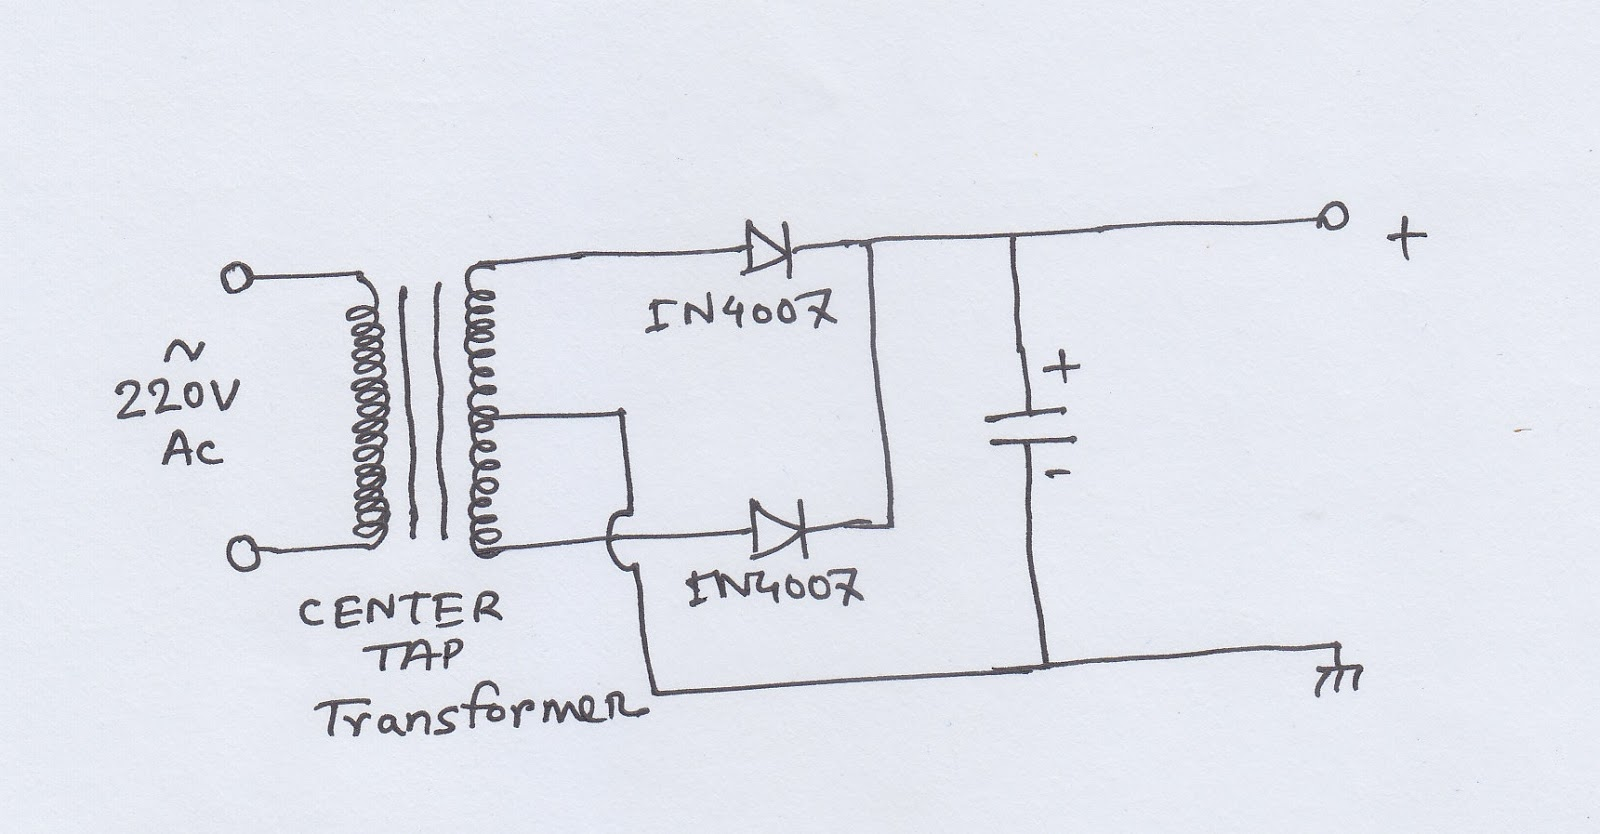 Scavengers Blog Ac To Dc Circuit 1 Hobby Electronics Capacitor In A There Is 9v Battery Series With The Next Thing Capacitors Charge When They Are Connected Supply Discharge Cut Off So This